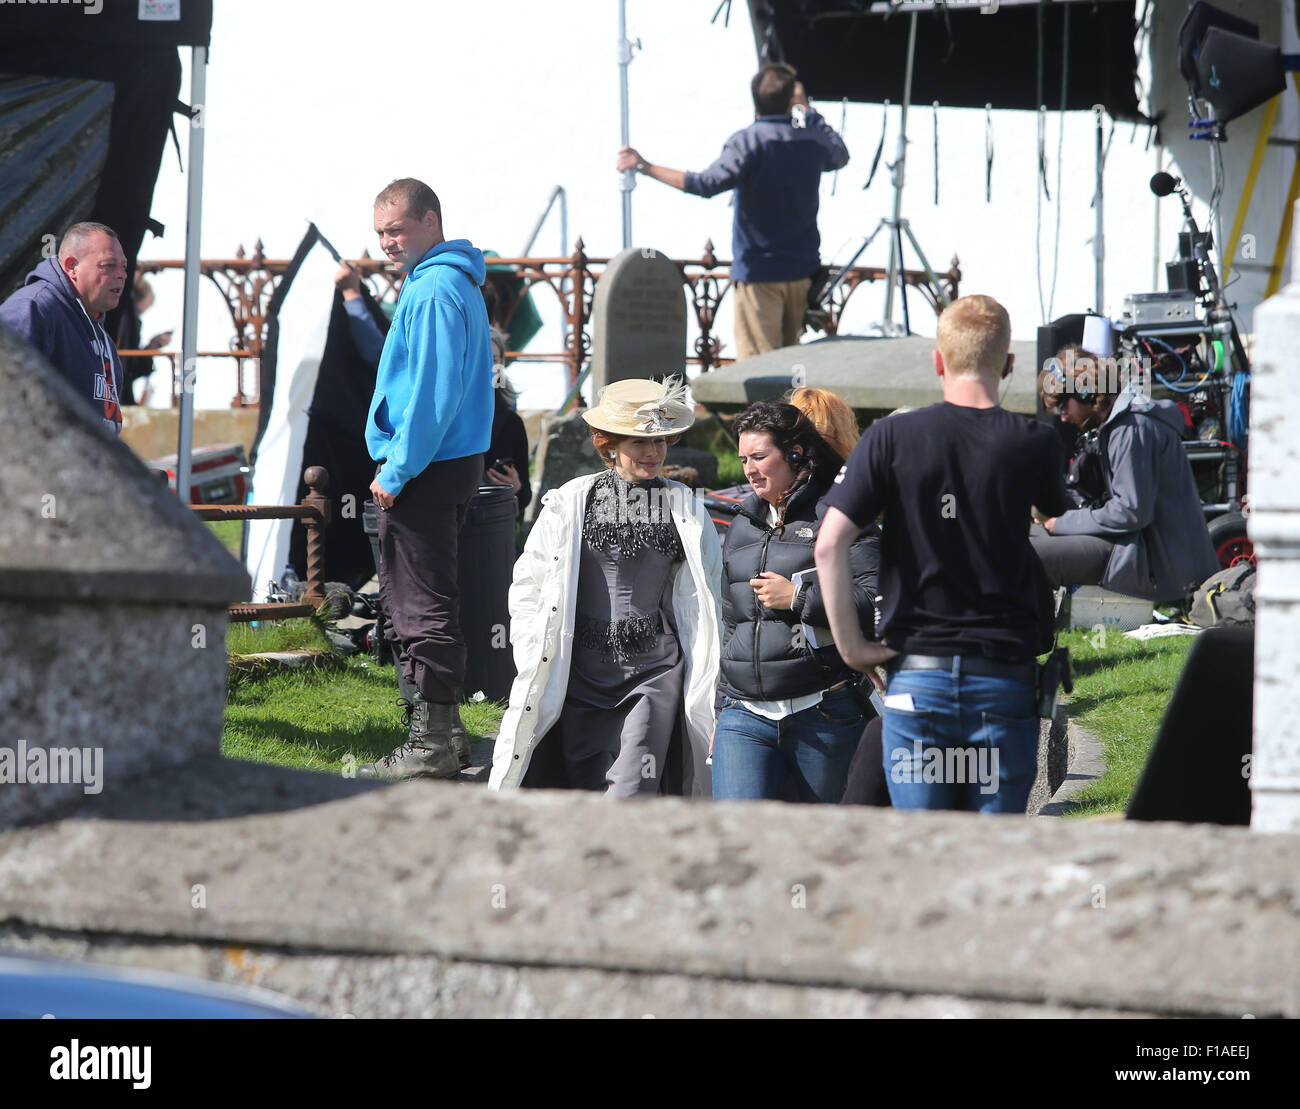 """Ballintoy, Co Antrim, UK.  31st August, 2015. Sienna Miller who is starring in """"The Lost City of Z""""  Filming is Stock Photo"""